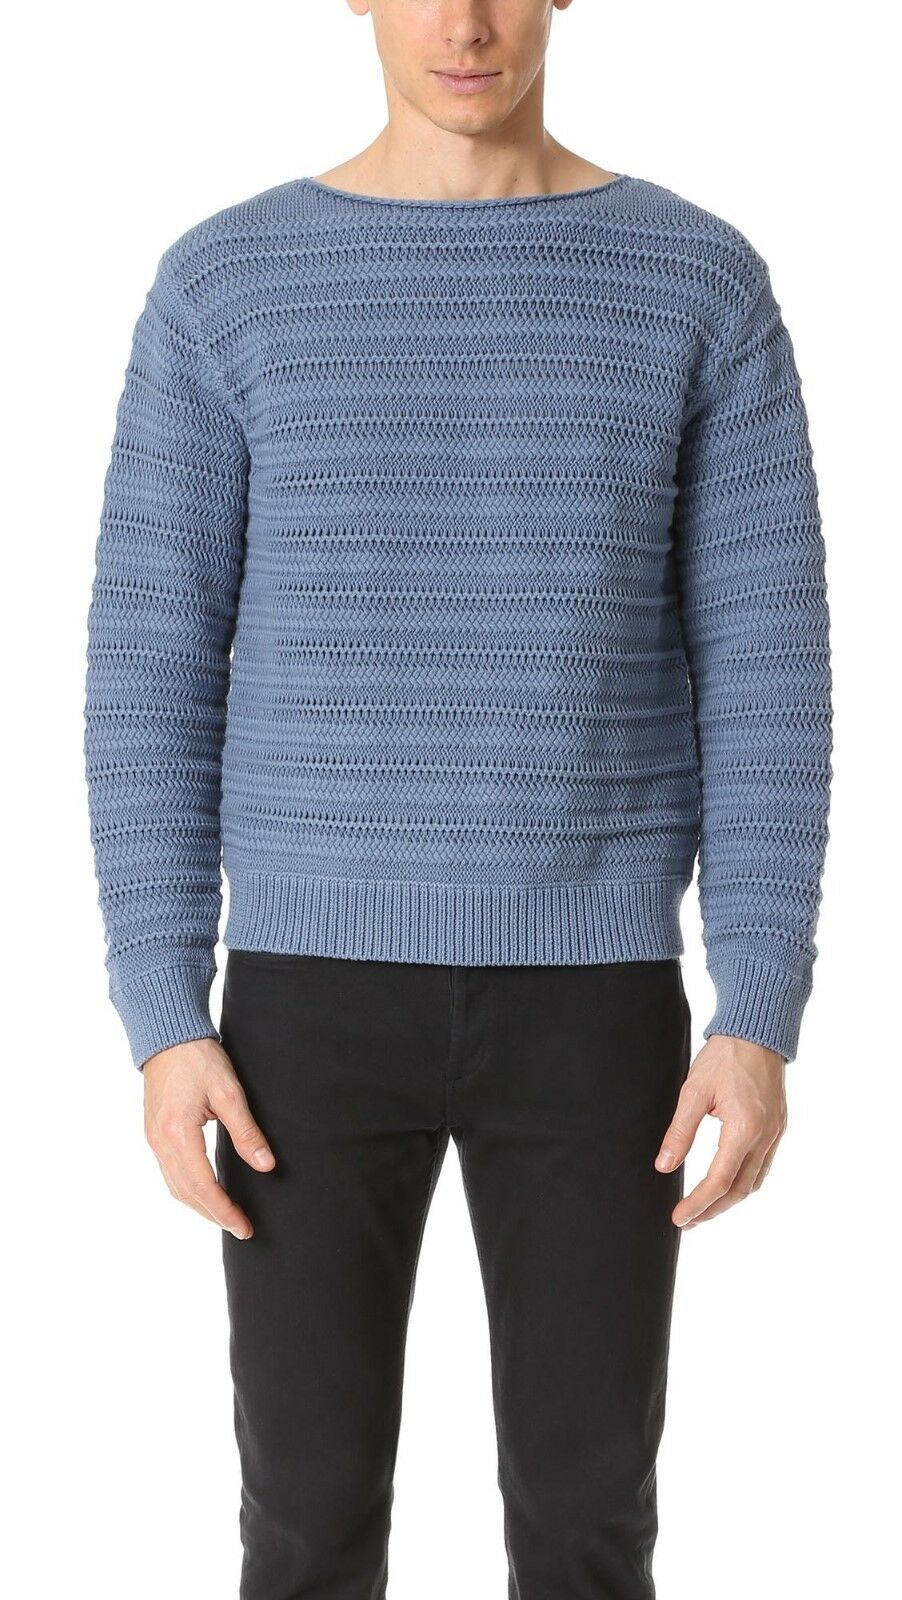 Vince Ocean bluee Mens Size L Knitted  Sweater NWOT